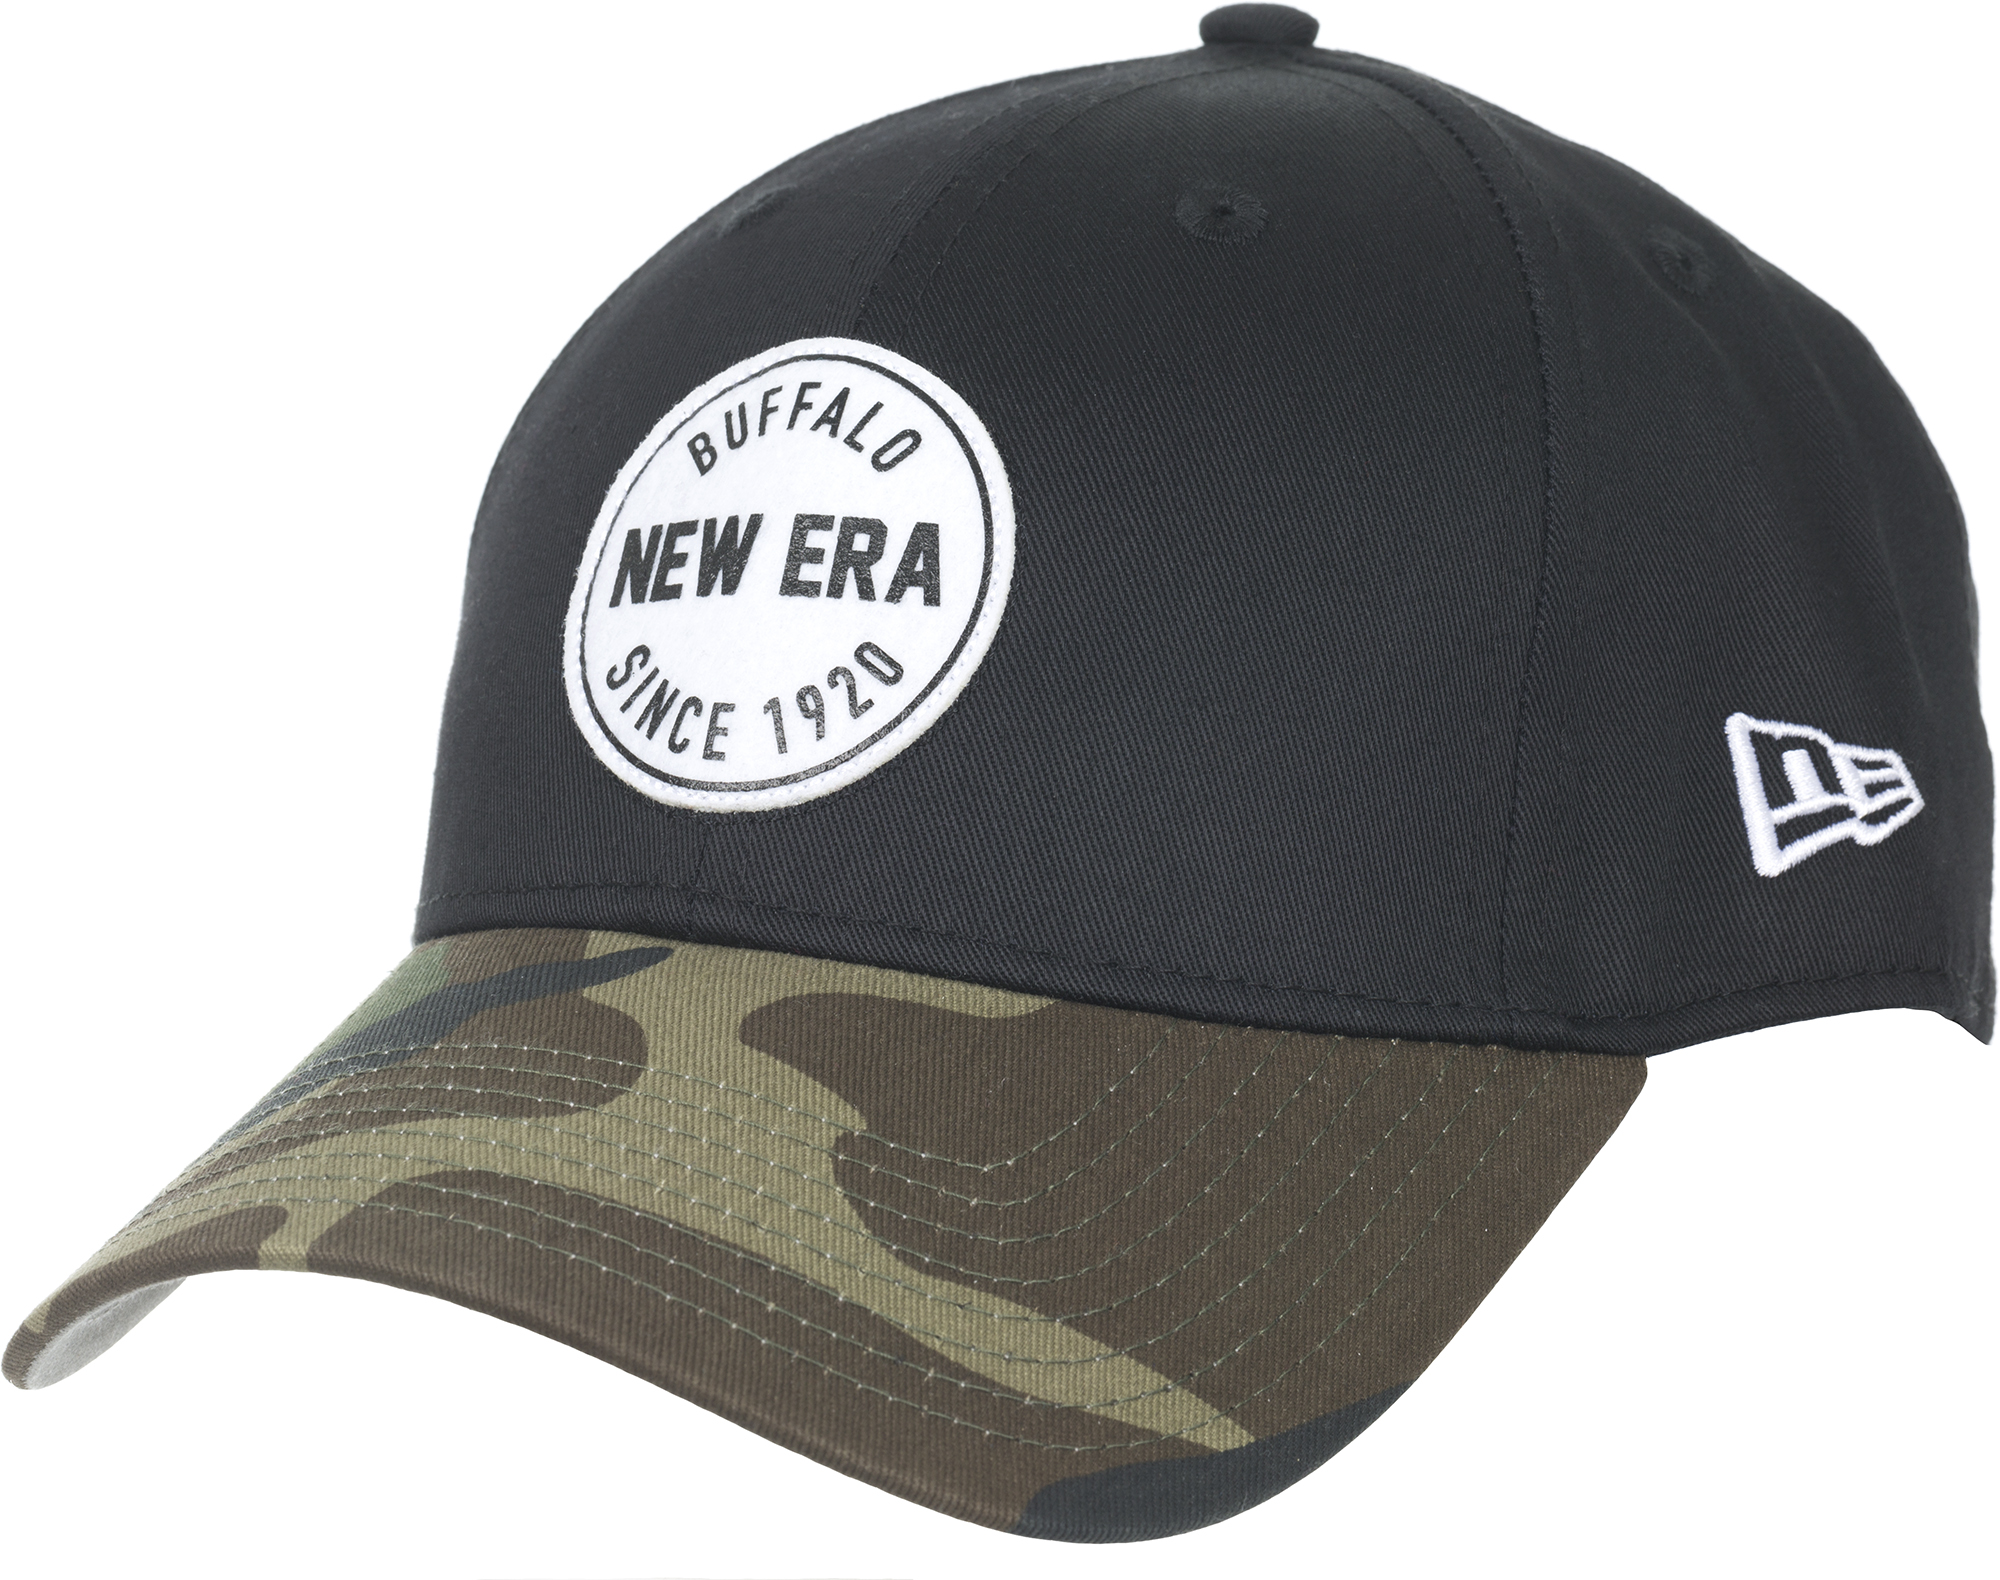 New Era Бейсболка New Era 115 Sm SP16 Entry 9Forty Newera, размер Без размера